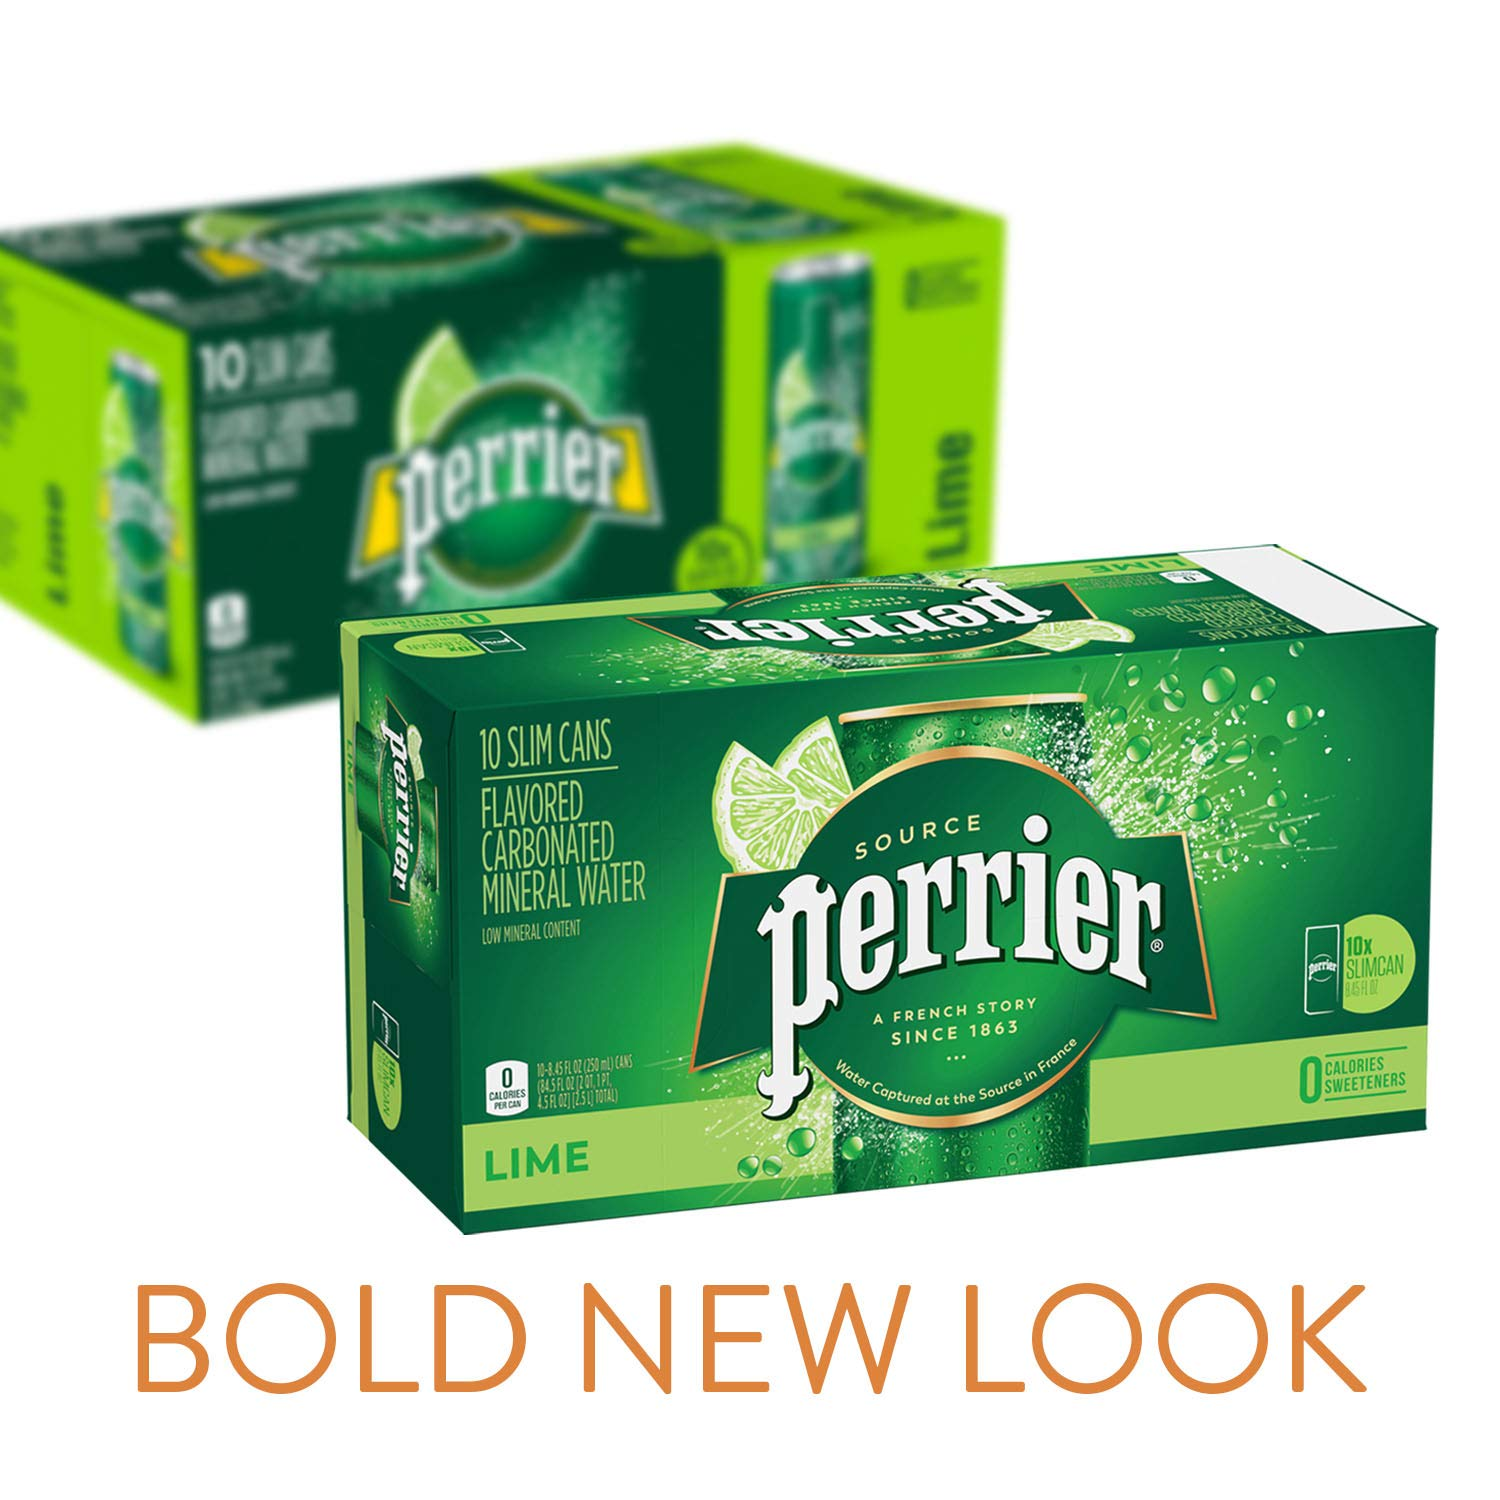 Perrier Lime Flavored Carbonated Mineral Water, 8.45 fl oz. Slim Cans (pack of 10)